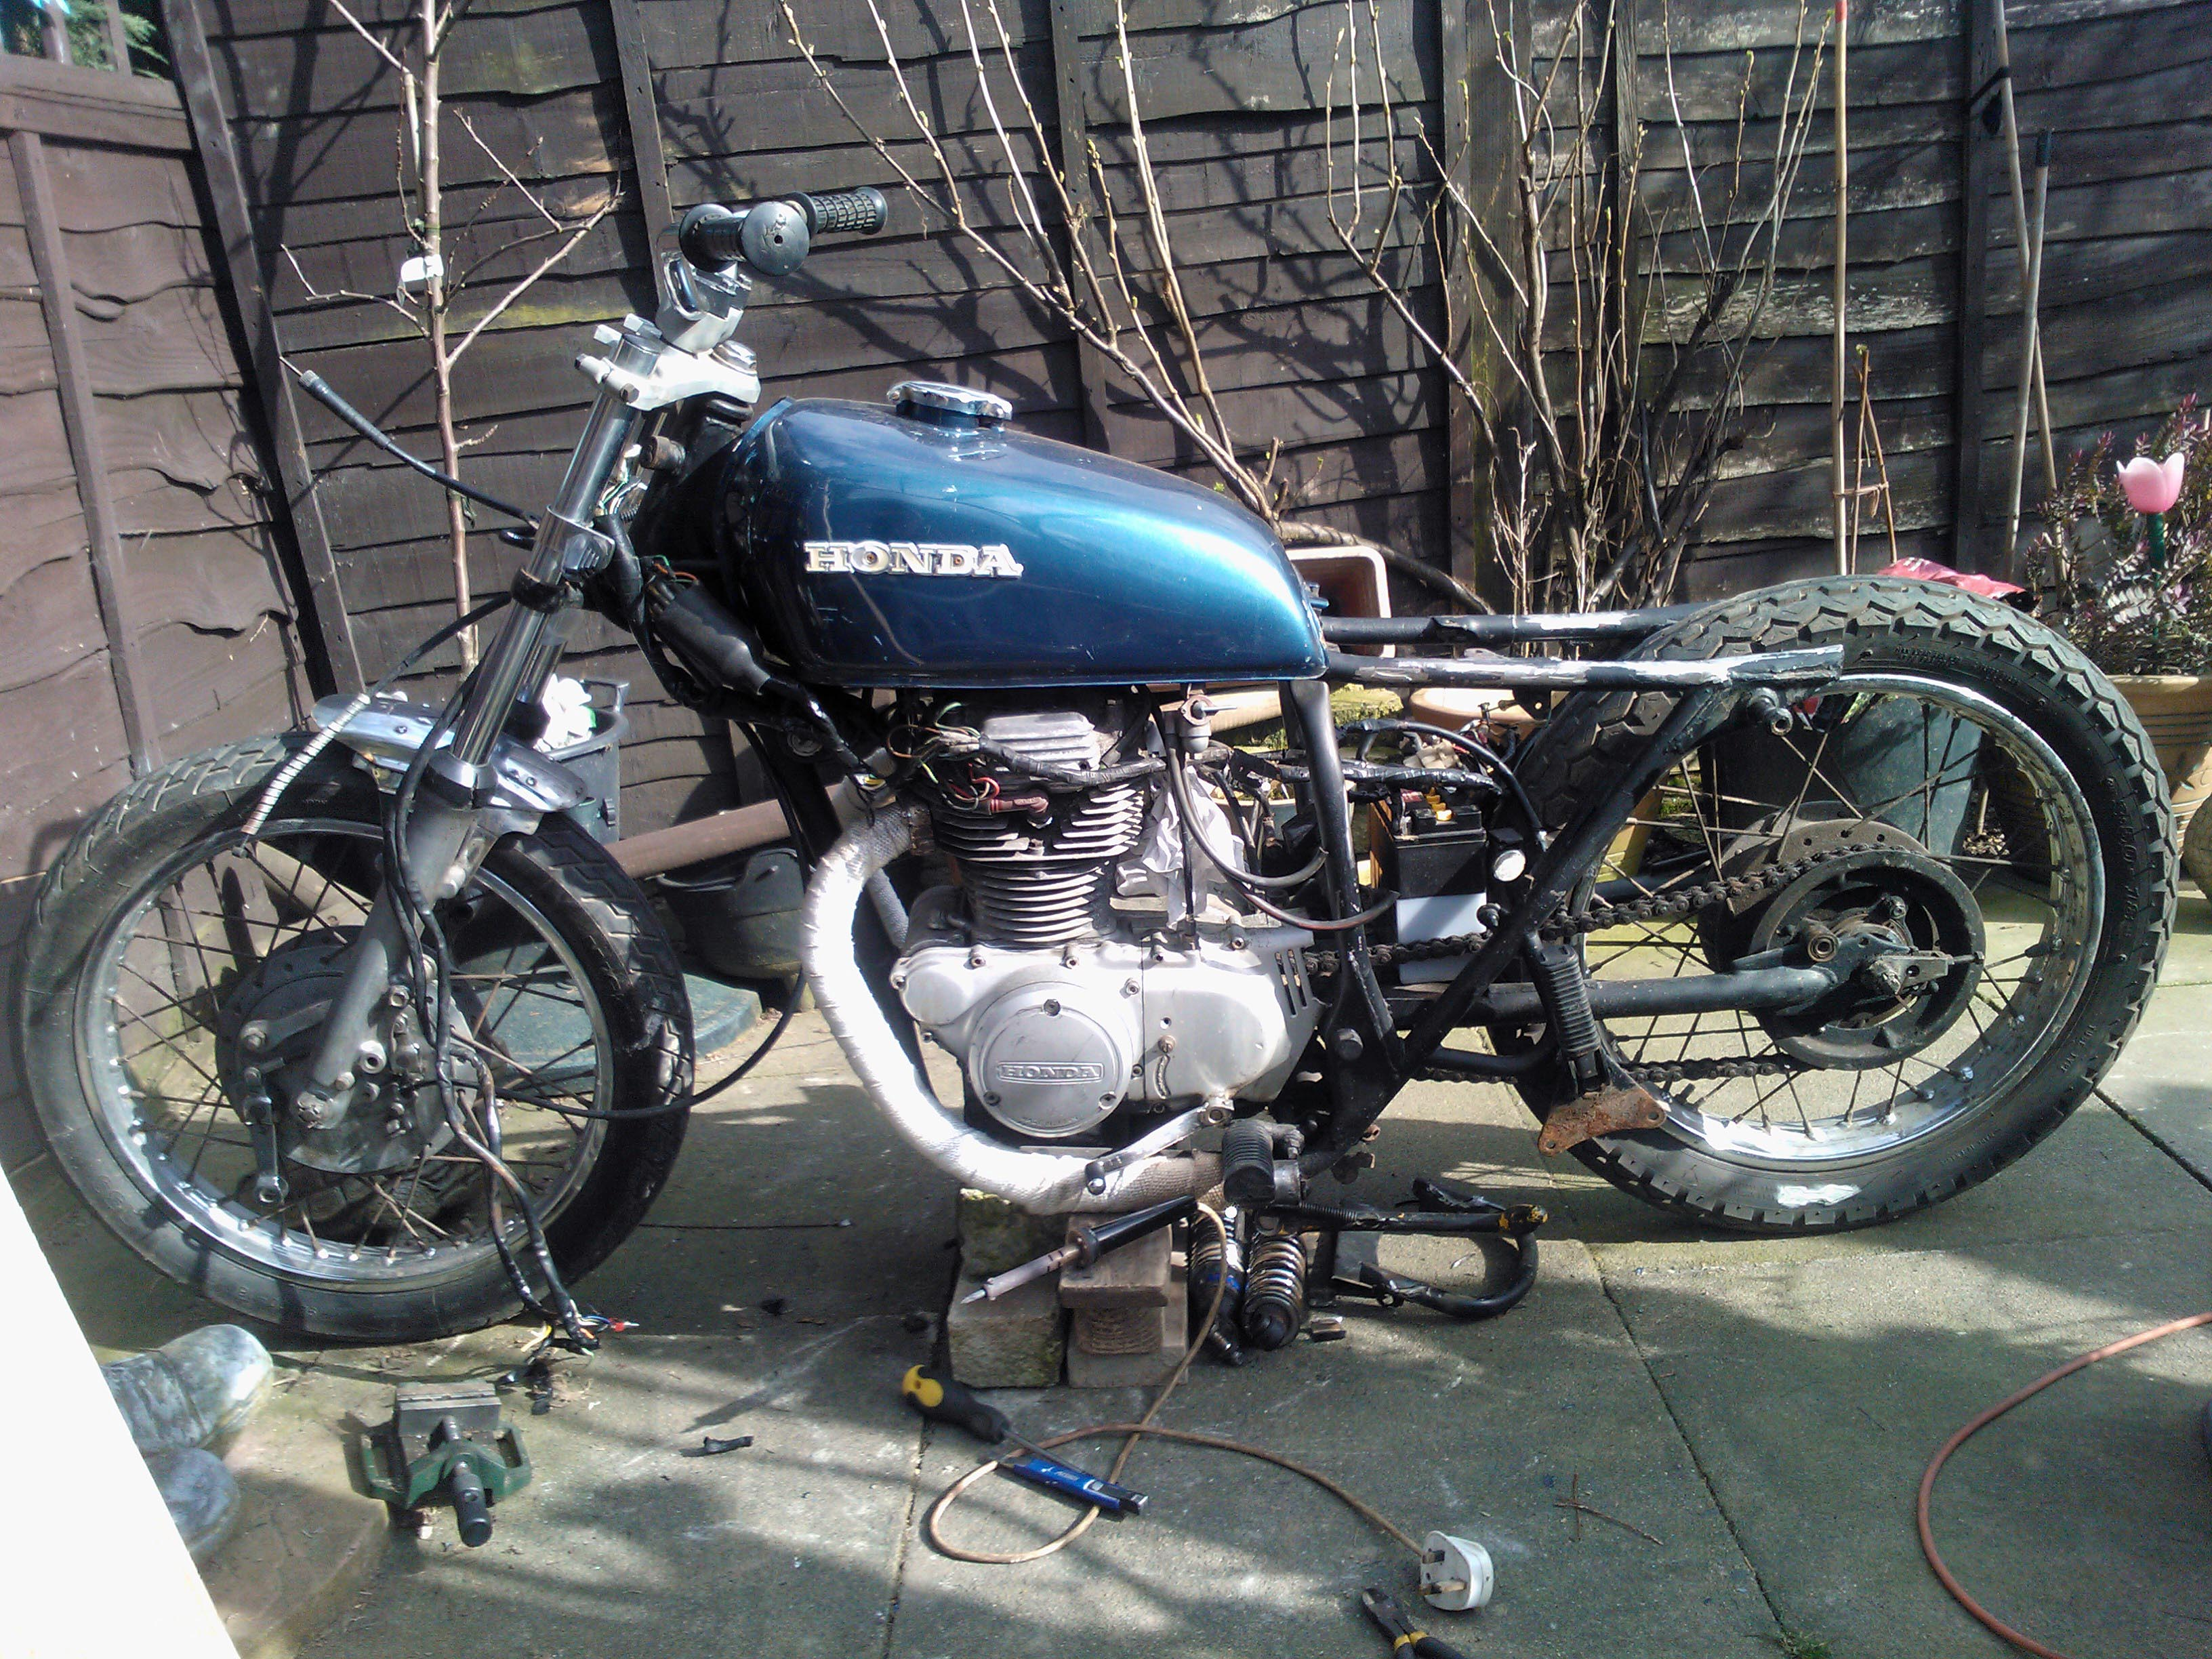 Project Cb250 G5 Page 3 Honda Wiring Diagram Salter S Phone 000005